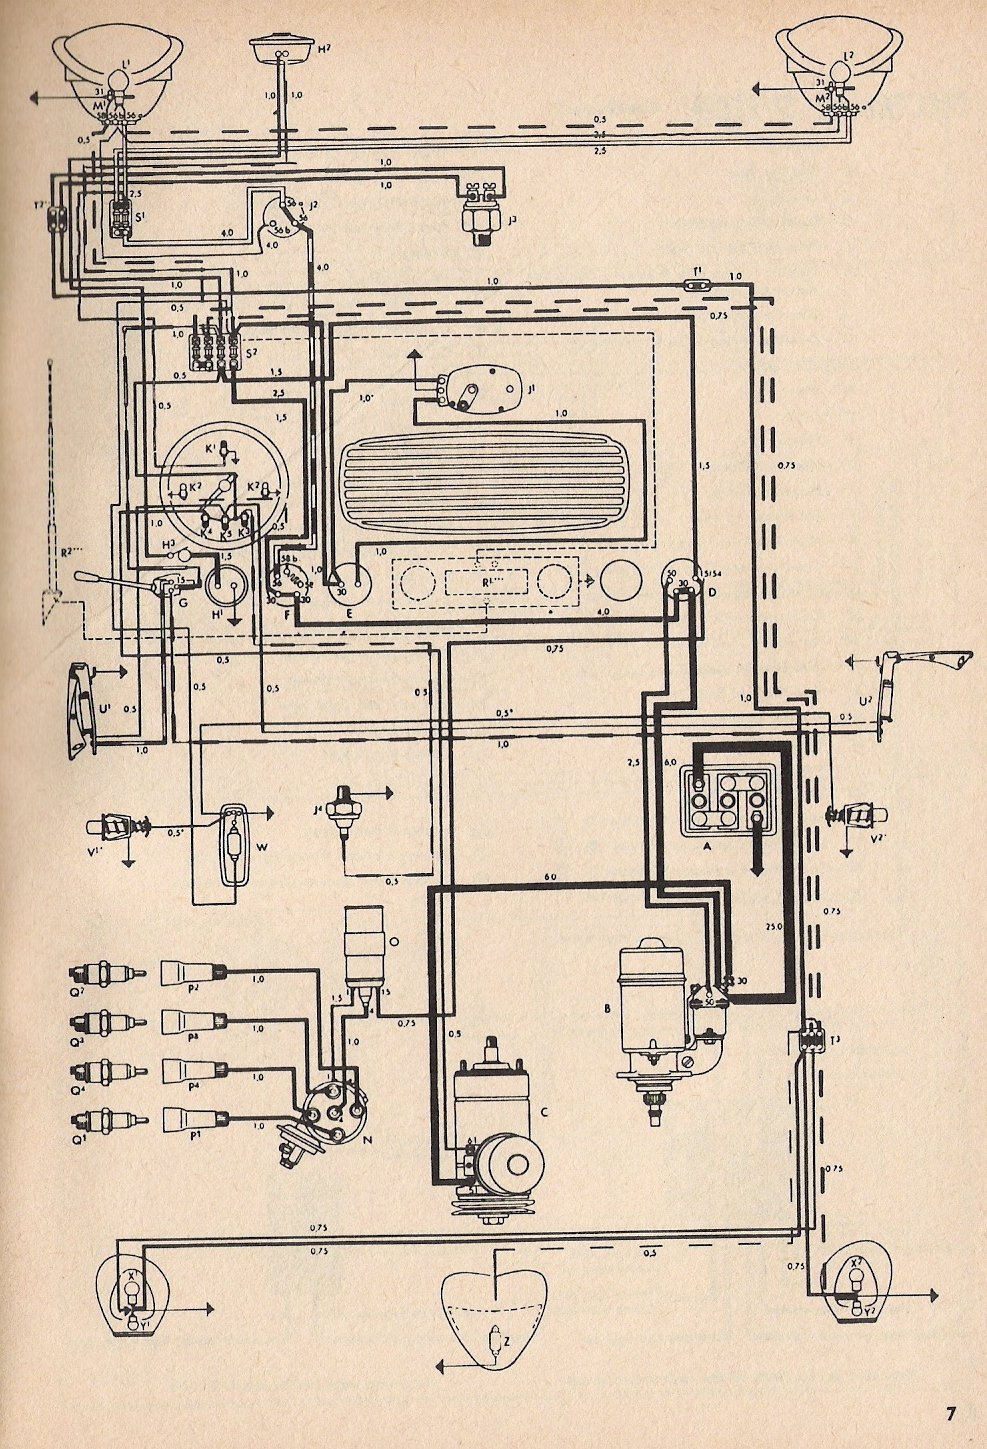 Type 1 Wiring Diagrams Ground Diagram 71 Mustang